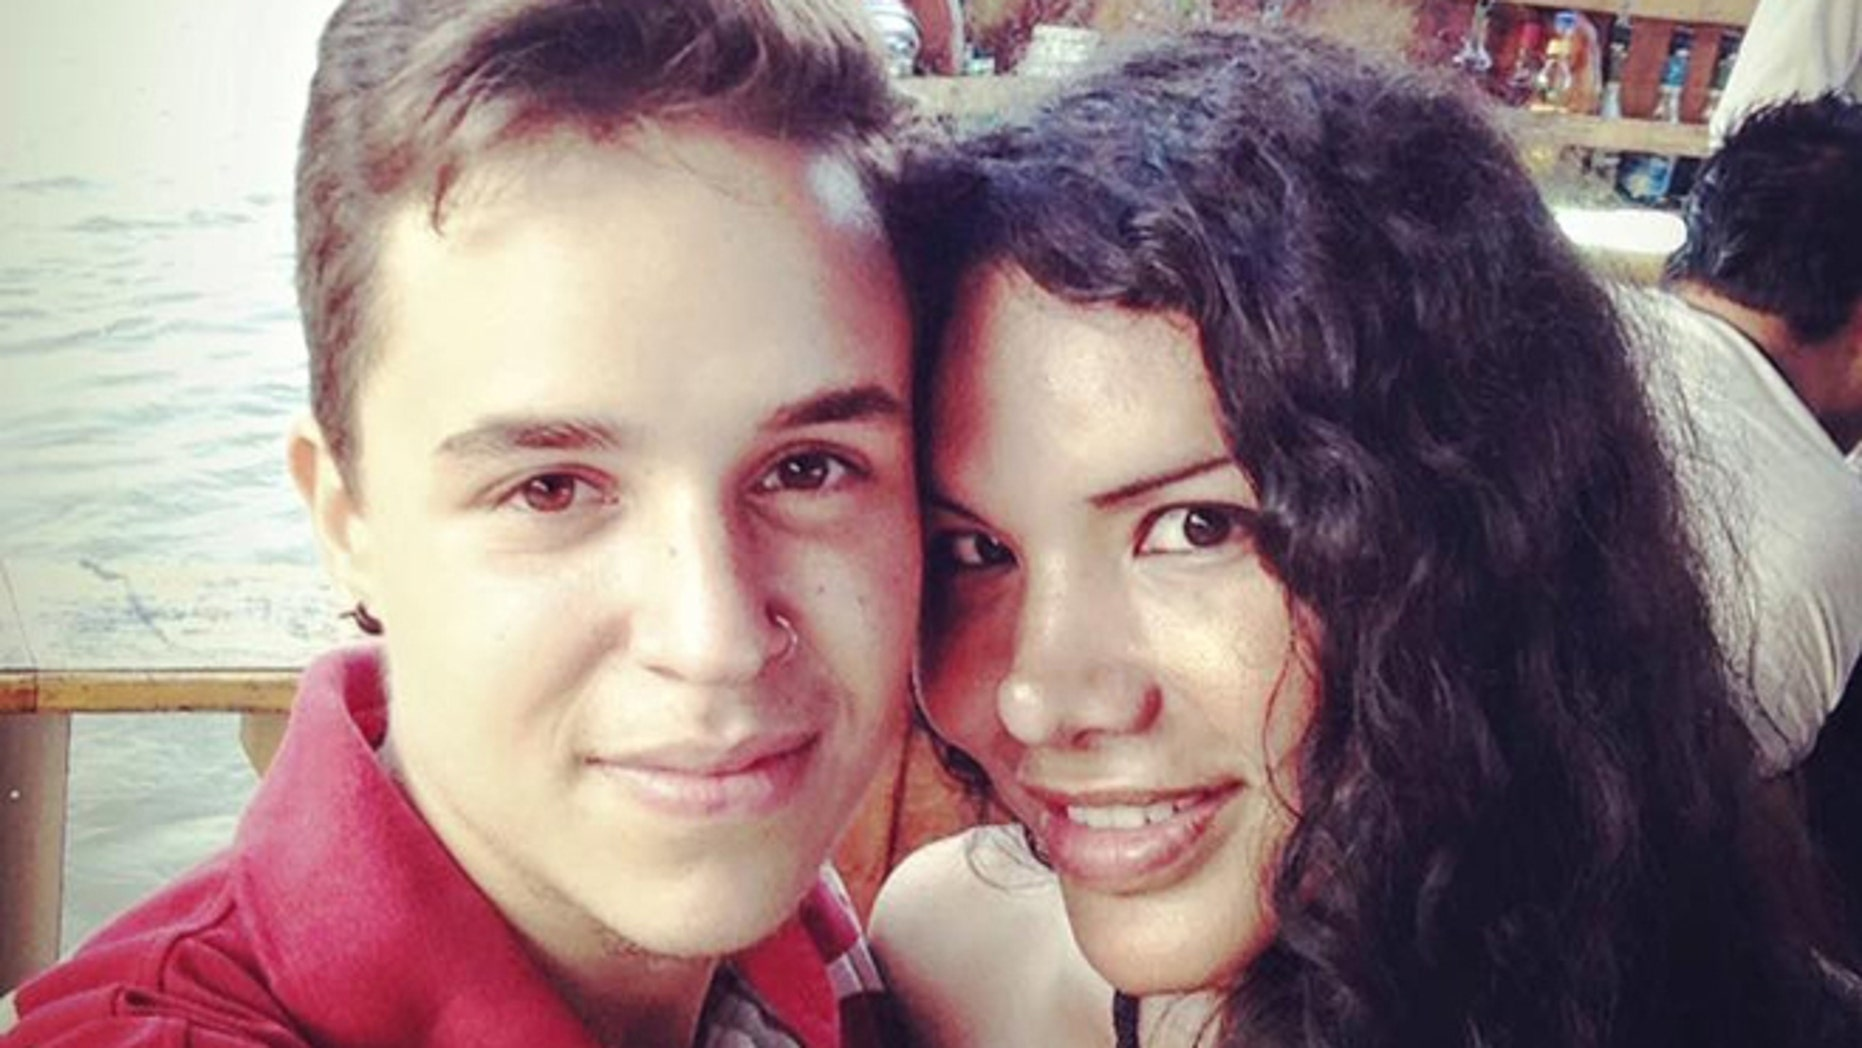 This Nov. 11, 2015 photo courtesy of Fernando Machado shows him, left, taking a selfie with his partner Diane Rodriguez in Guayaquil, Ecuador. The transgender couple announced on social media in December they were having a baby, believed to be the first pregnancy of its kind in South America. Rodriguez, who was born Luis, is one of Ecuadorâs most-prominent LGBT activists and says she and her Venezuelan-born partner, whose birth name was Maria, decided to publicize the pregnancy to help change attitudes in the staunchly Roman Catholic society. (Fernando Machado via AP)